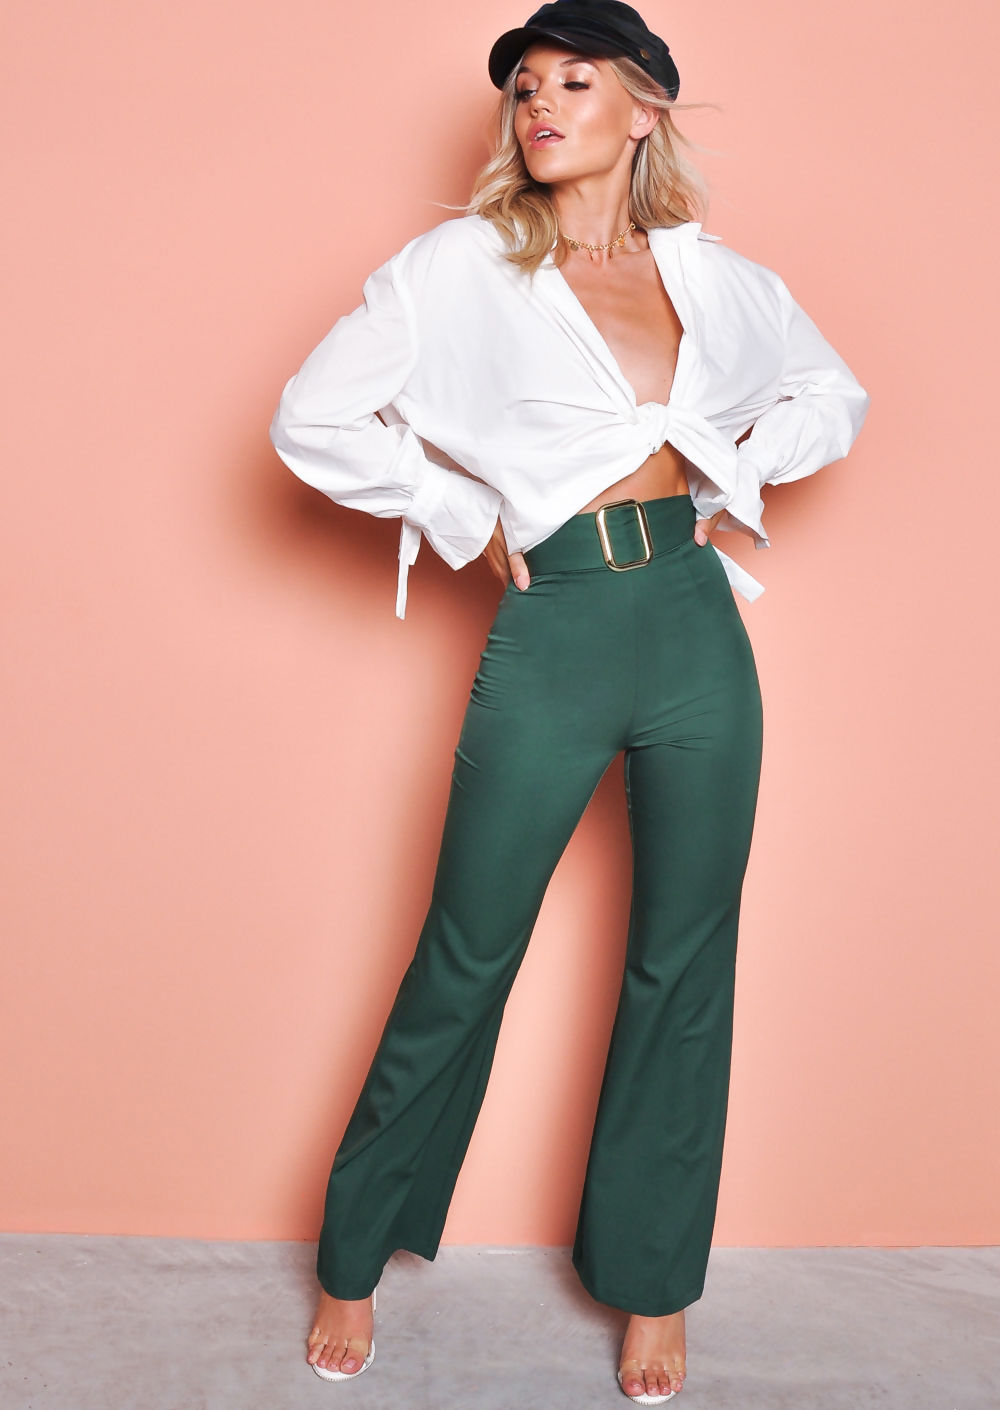 belted-satin-high-waisted-flared-trousers-green-Alisha-lily-lulu-fashion-2-2.jpg